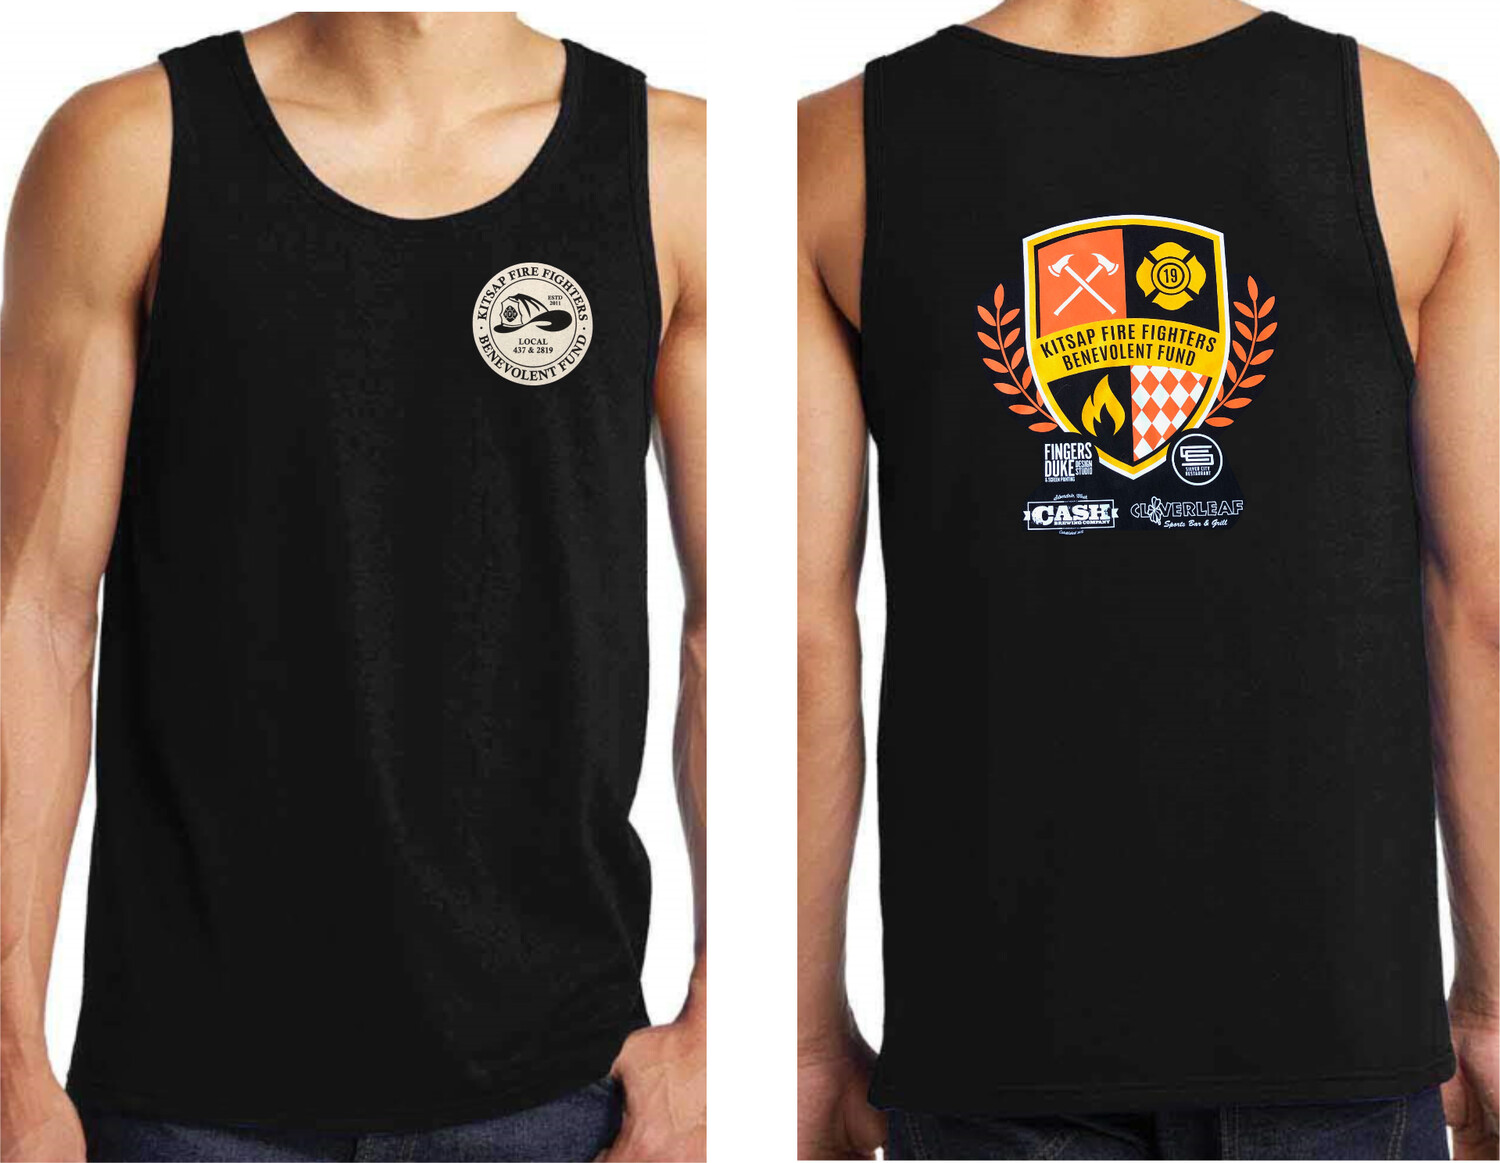 Octoberfest B-Fund Tank Top